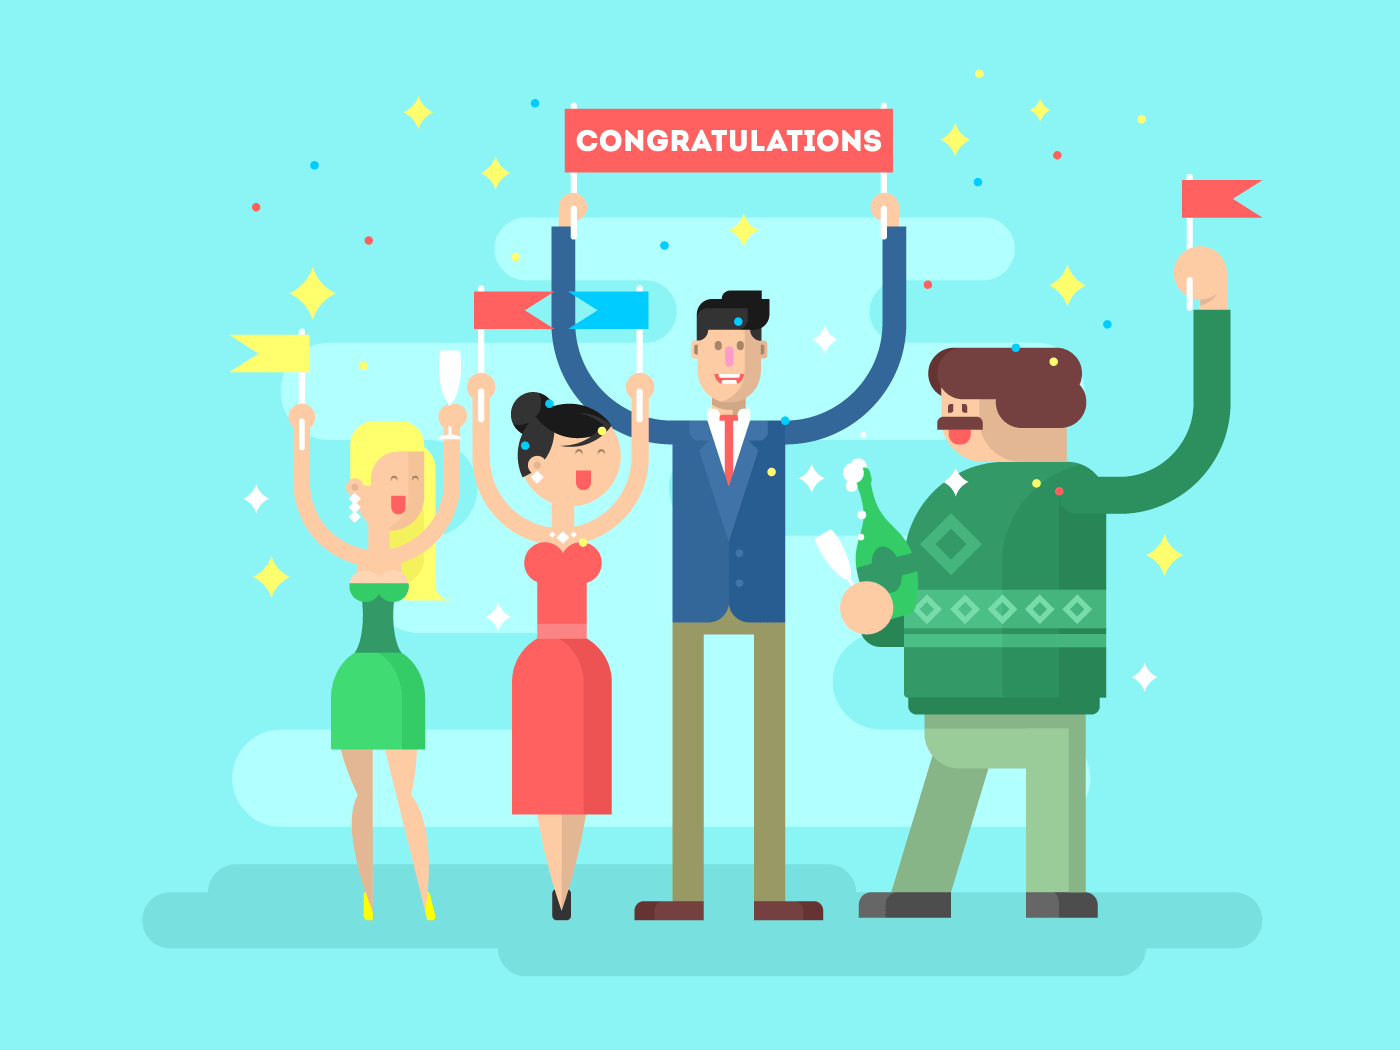 Congratulations group people flat vector illustration